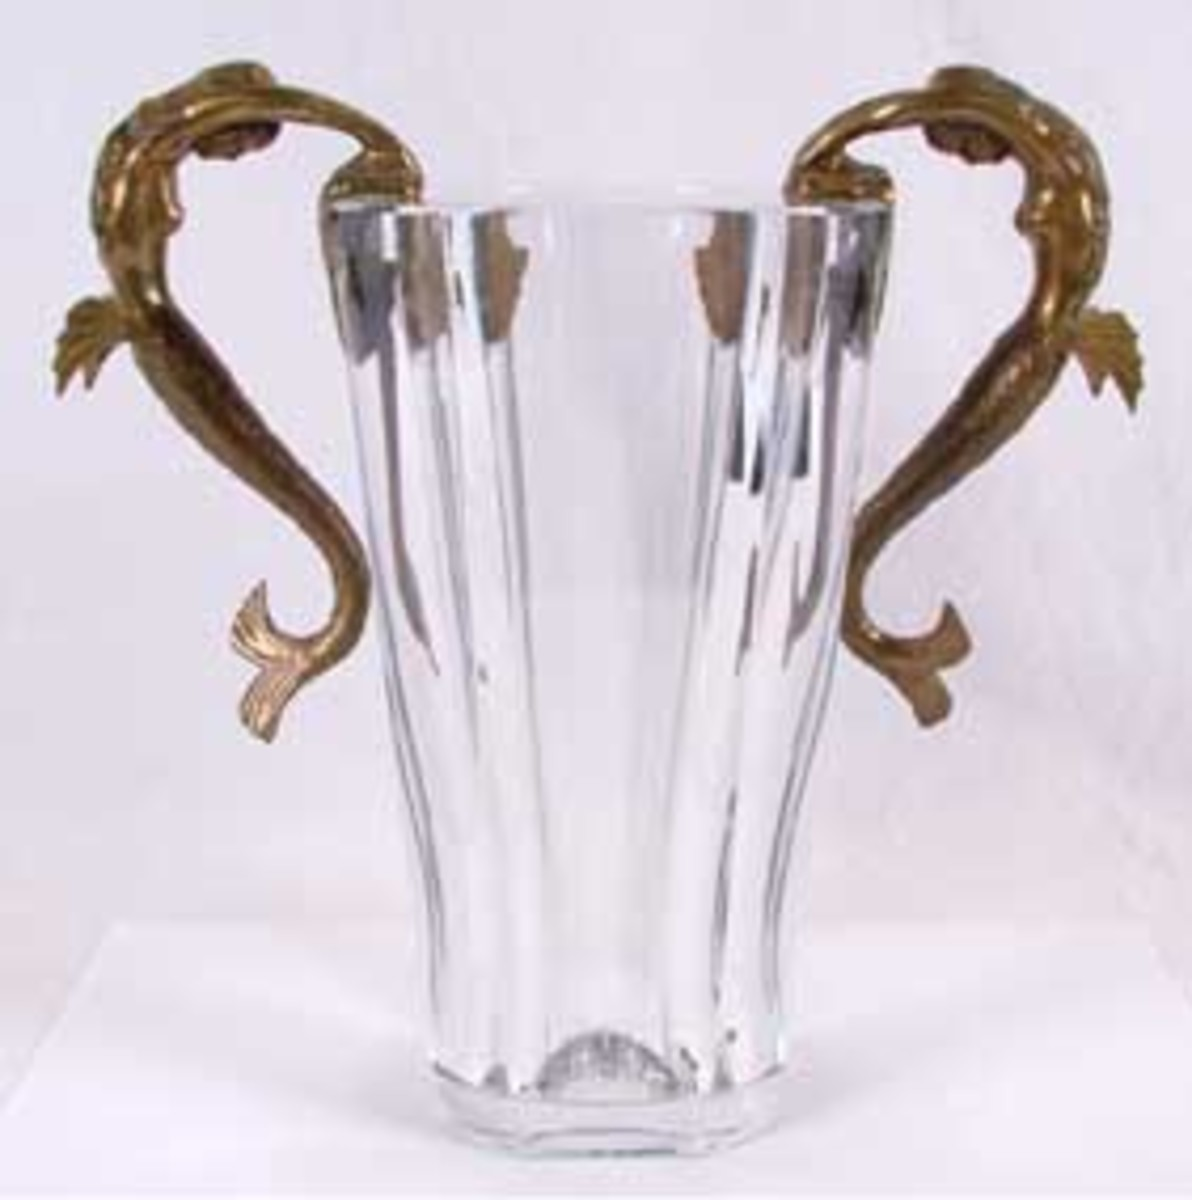 Erte Sea Maidens Mermaids Vase photo courtesy of antiquehelper.com